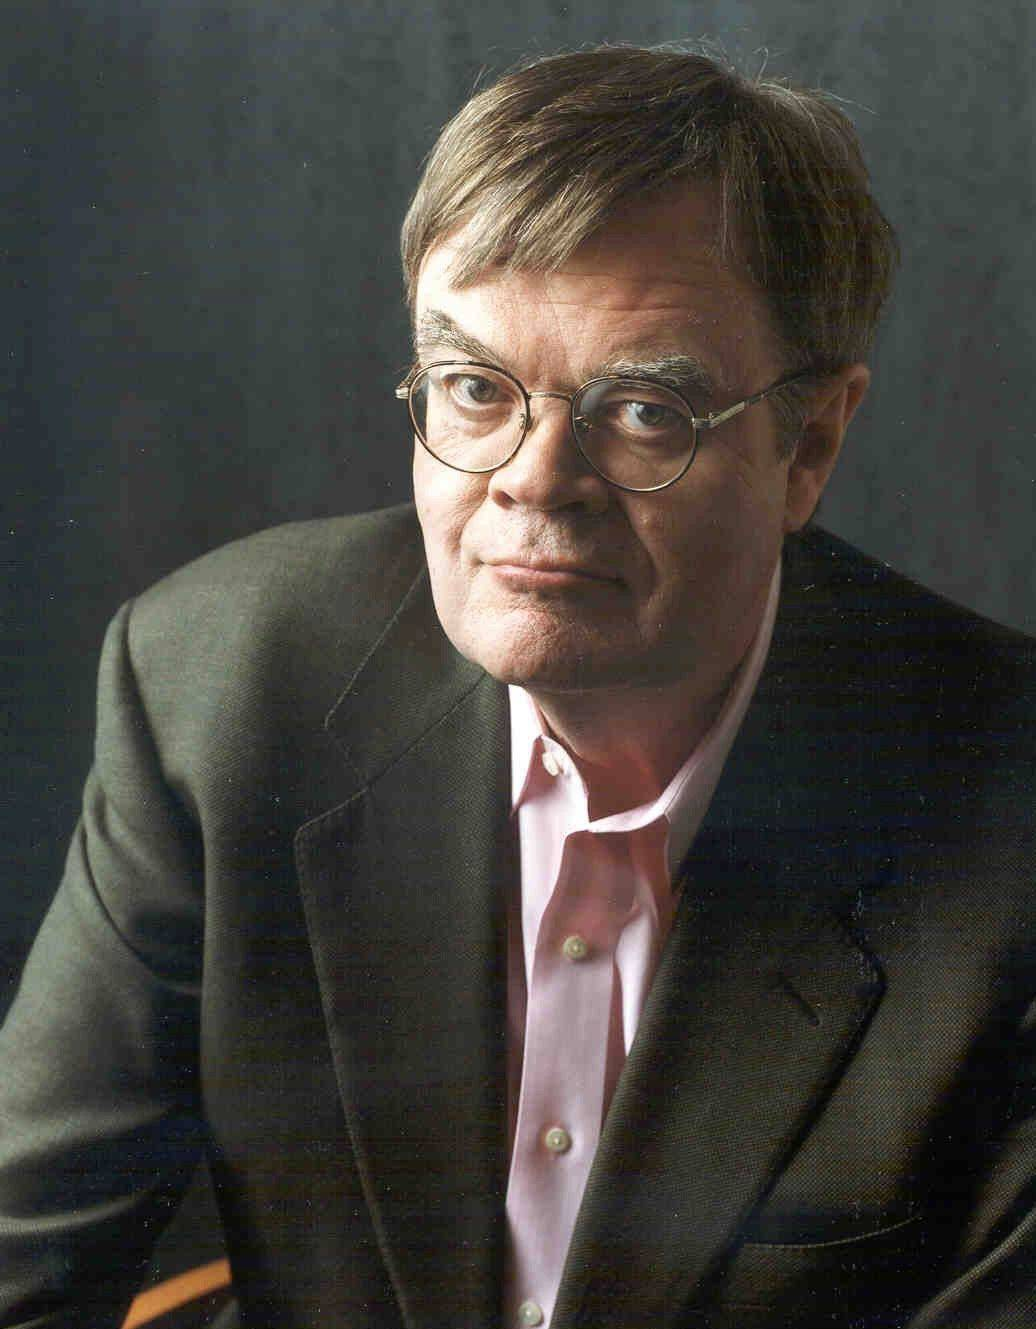 Author, radio personality and actor Garrison Keillor takes to the stage at College of DuPage's McAninch Arts Center in Glen Ellyn on Sunday, Oct. 23.